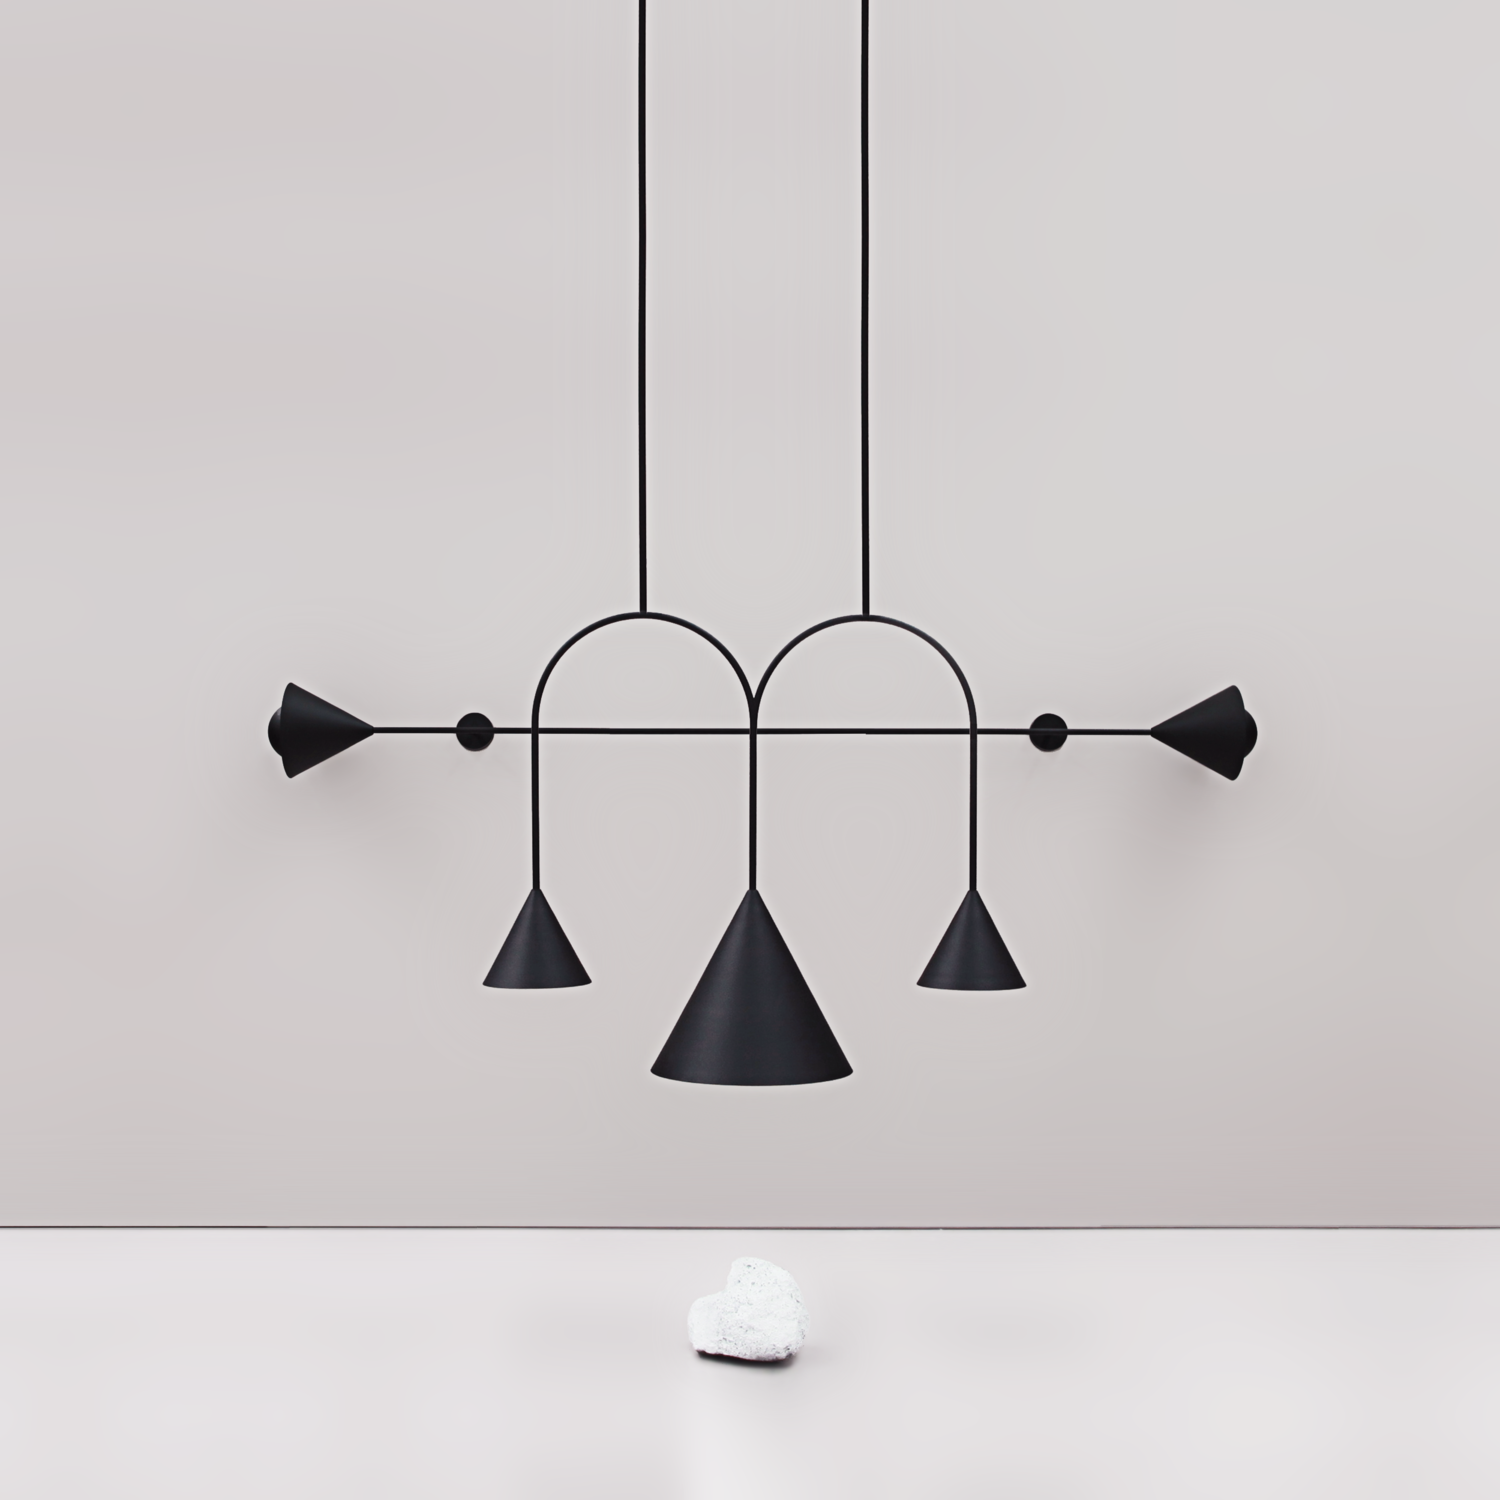 The 'Conehome' arch and stick series pendant lights / chandeliers from LAAL.